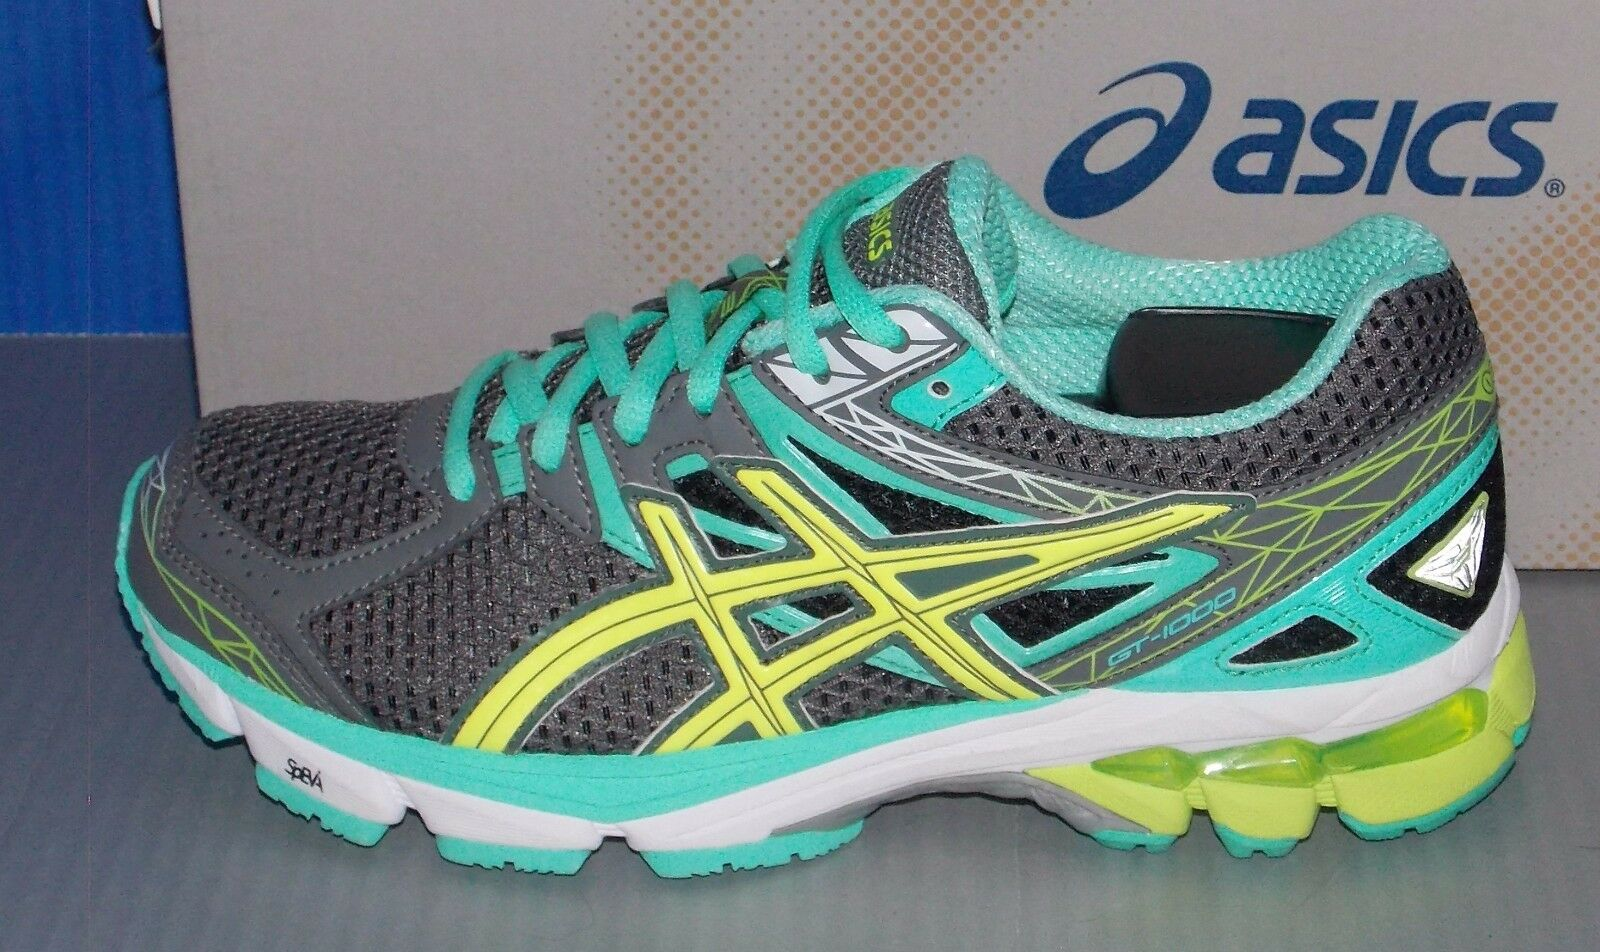 donna ASICS GT GT GT - 1000 3 in colores CHARCOAL   giallo   MINT Dimensione 6.5 10ff16